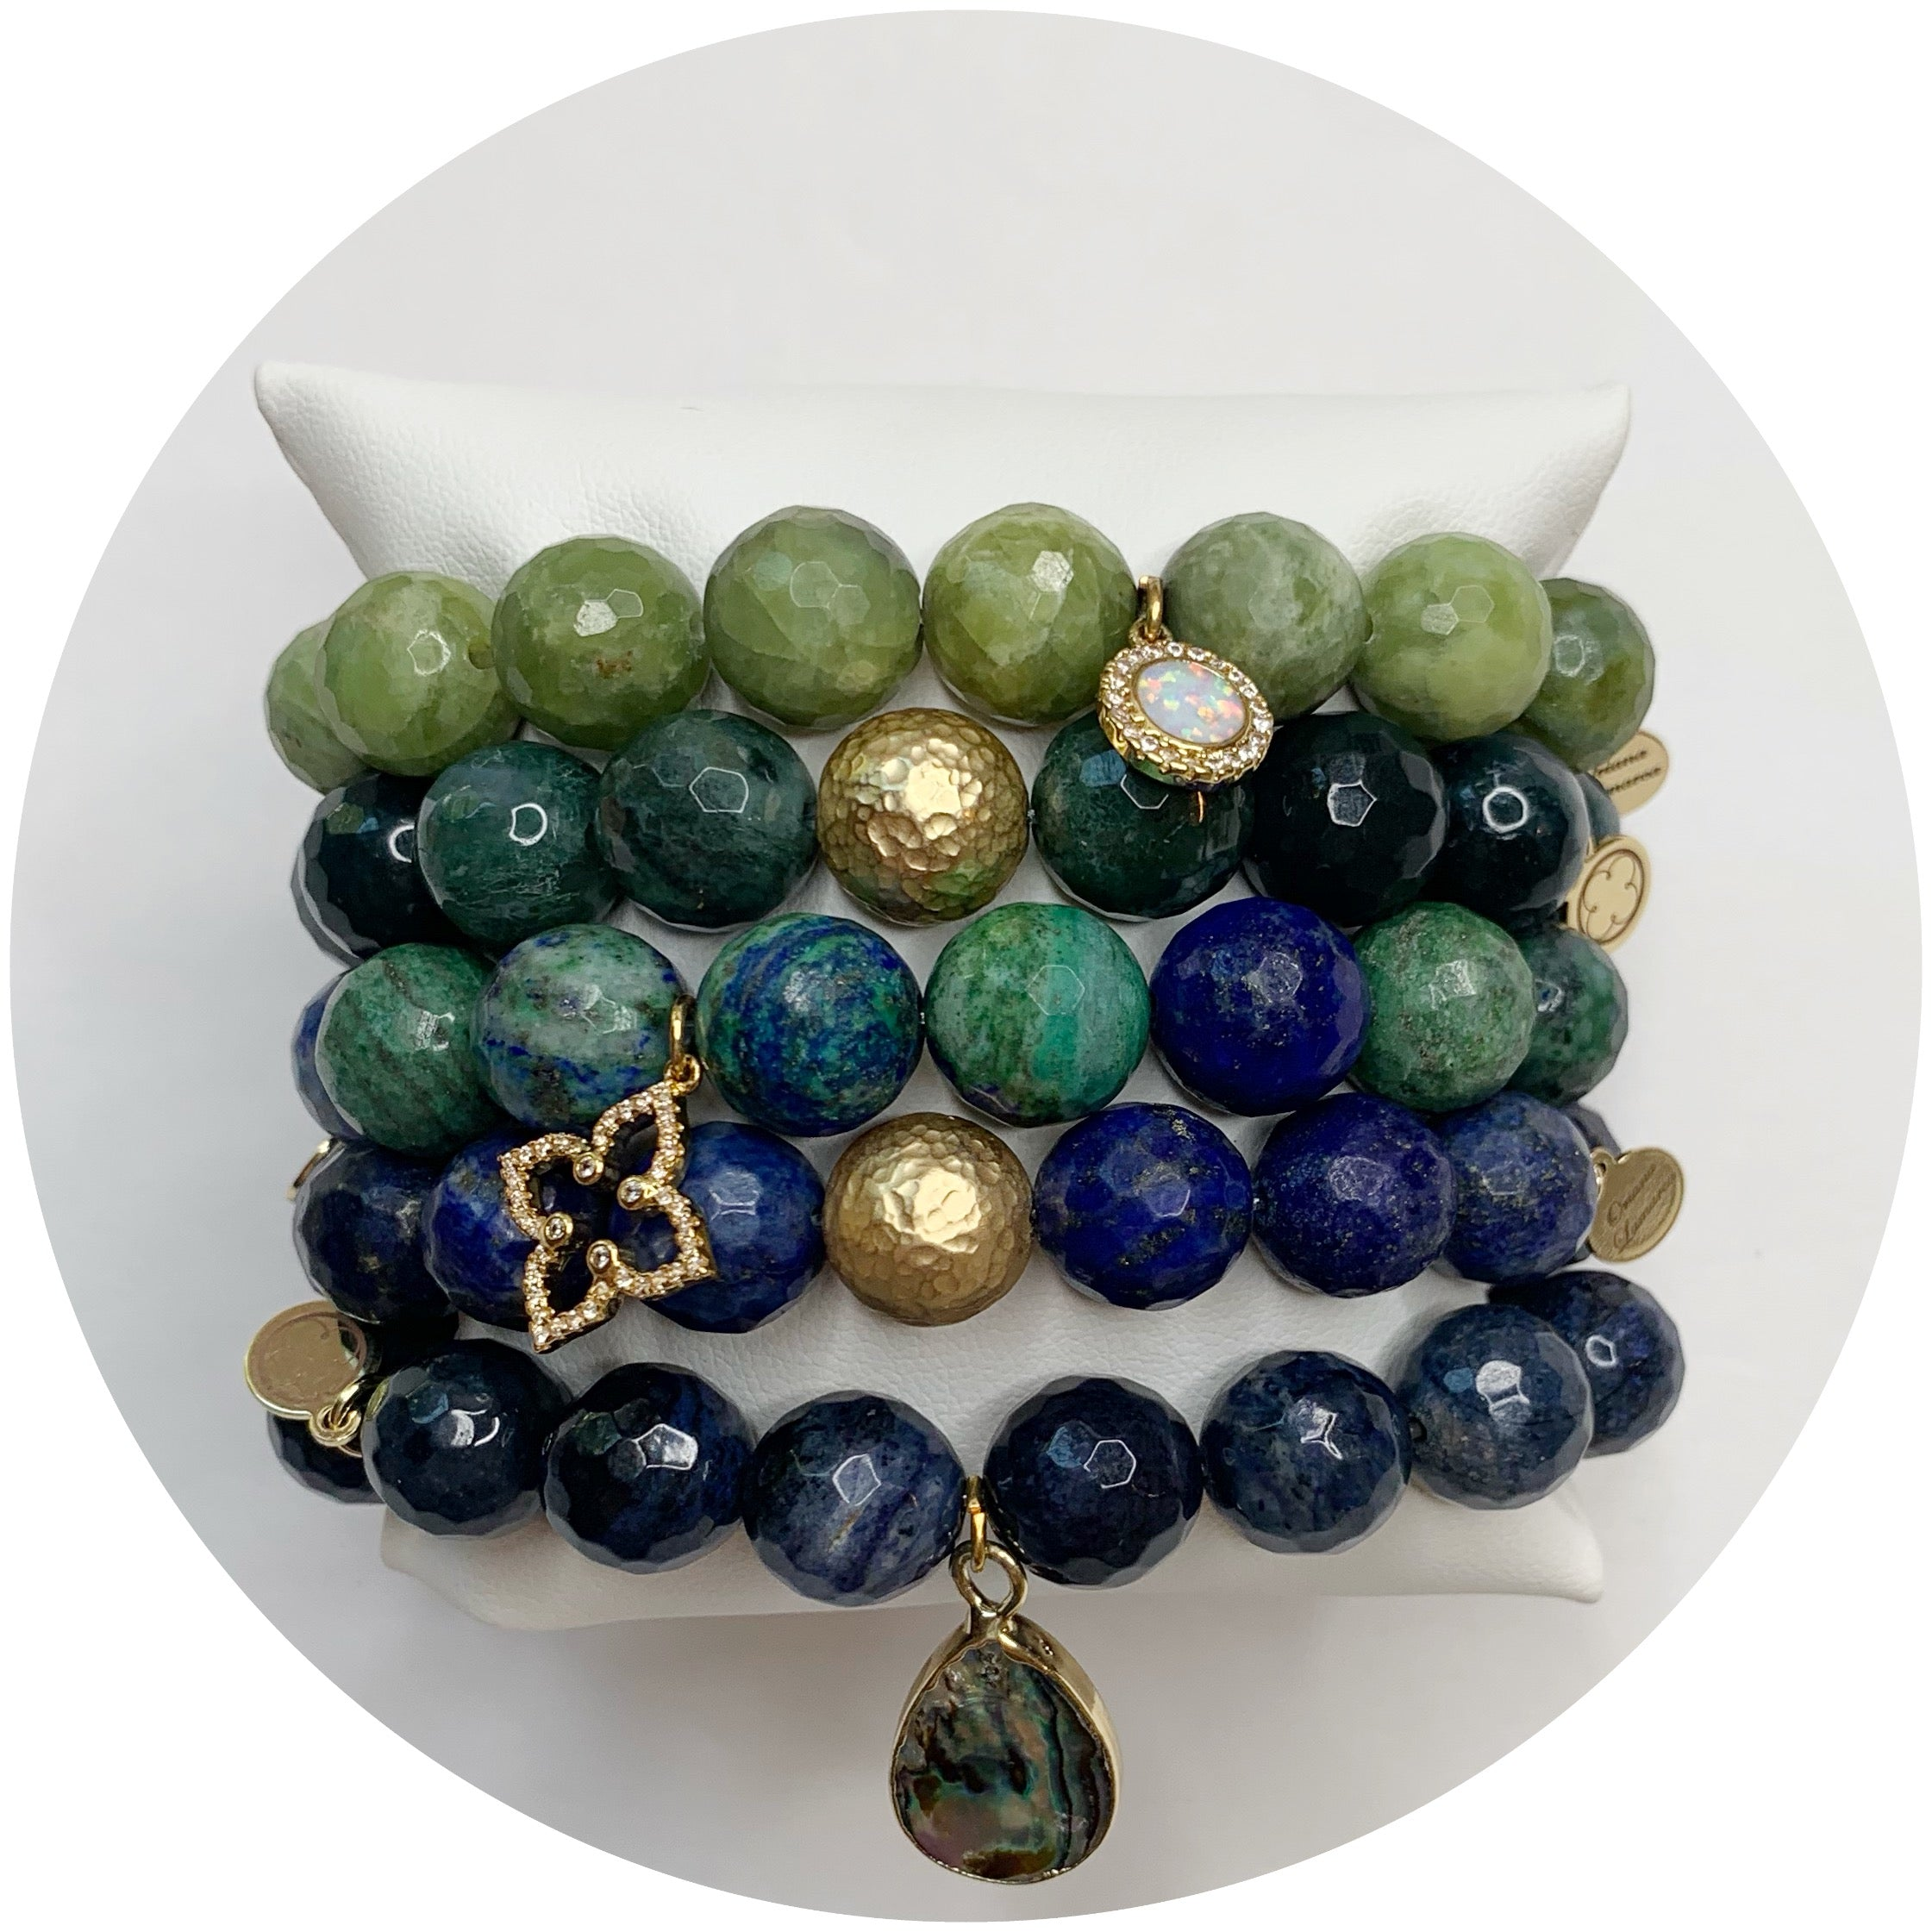 Evening Blue Armparty - Oriana Lamarca LLC